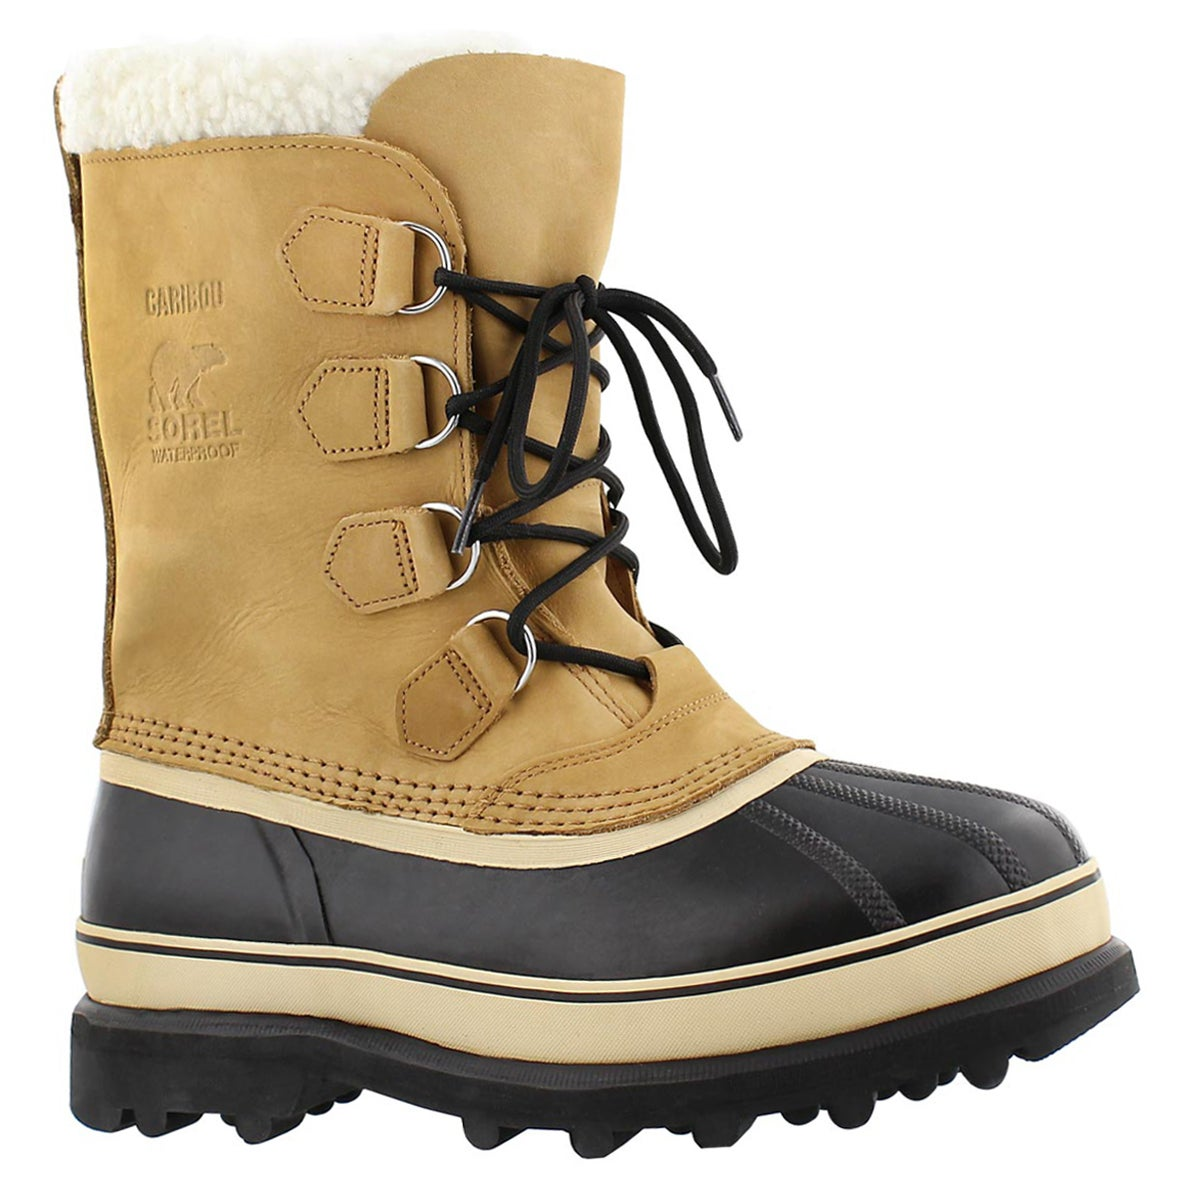 Men's CARIBOU BUFF nubuck tan winter boots